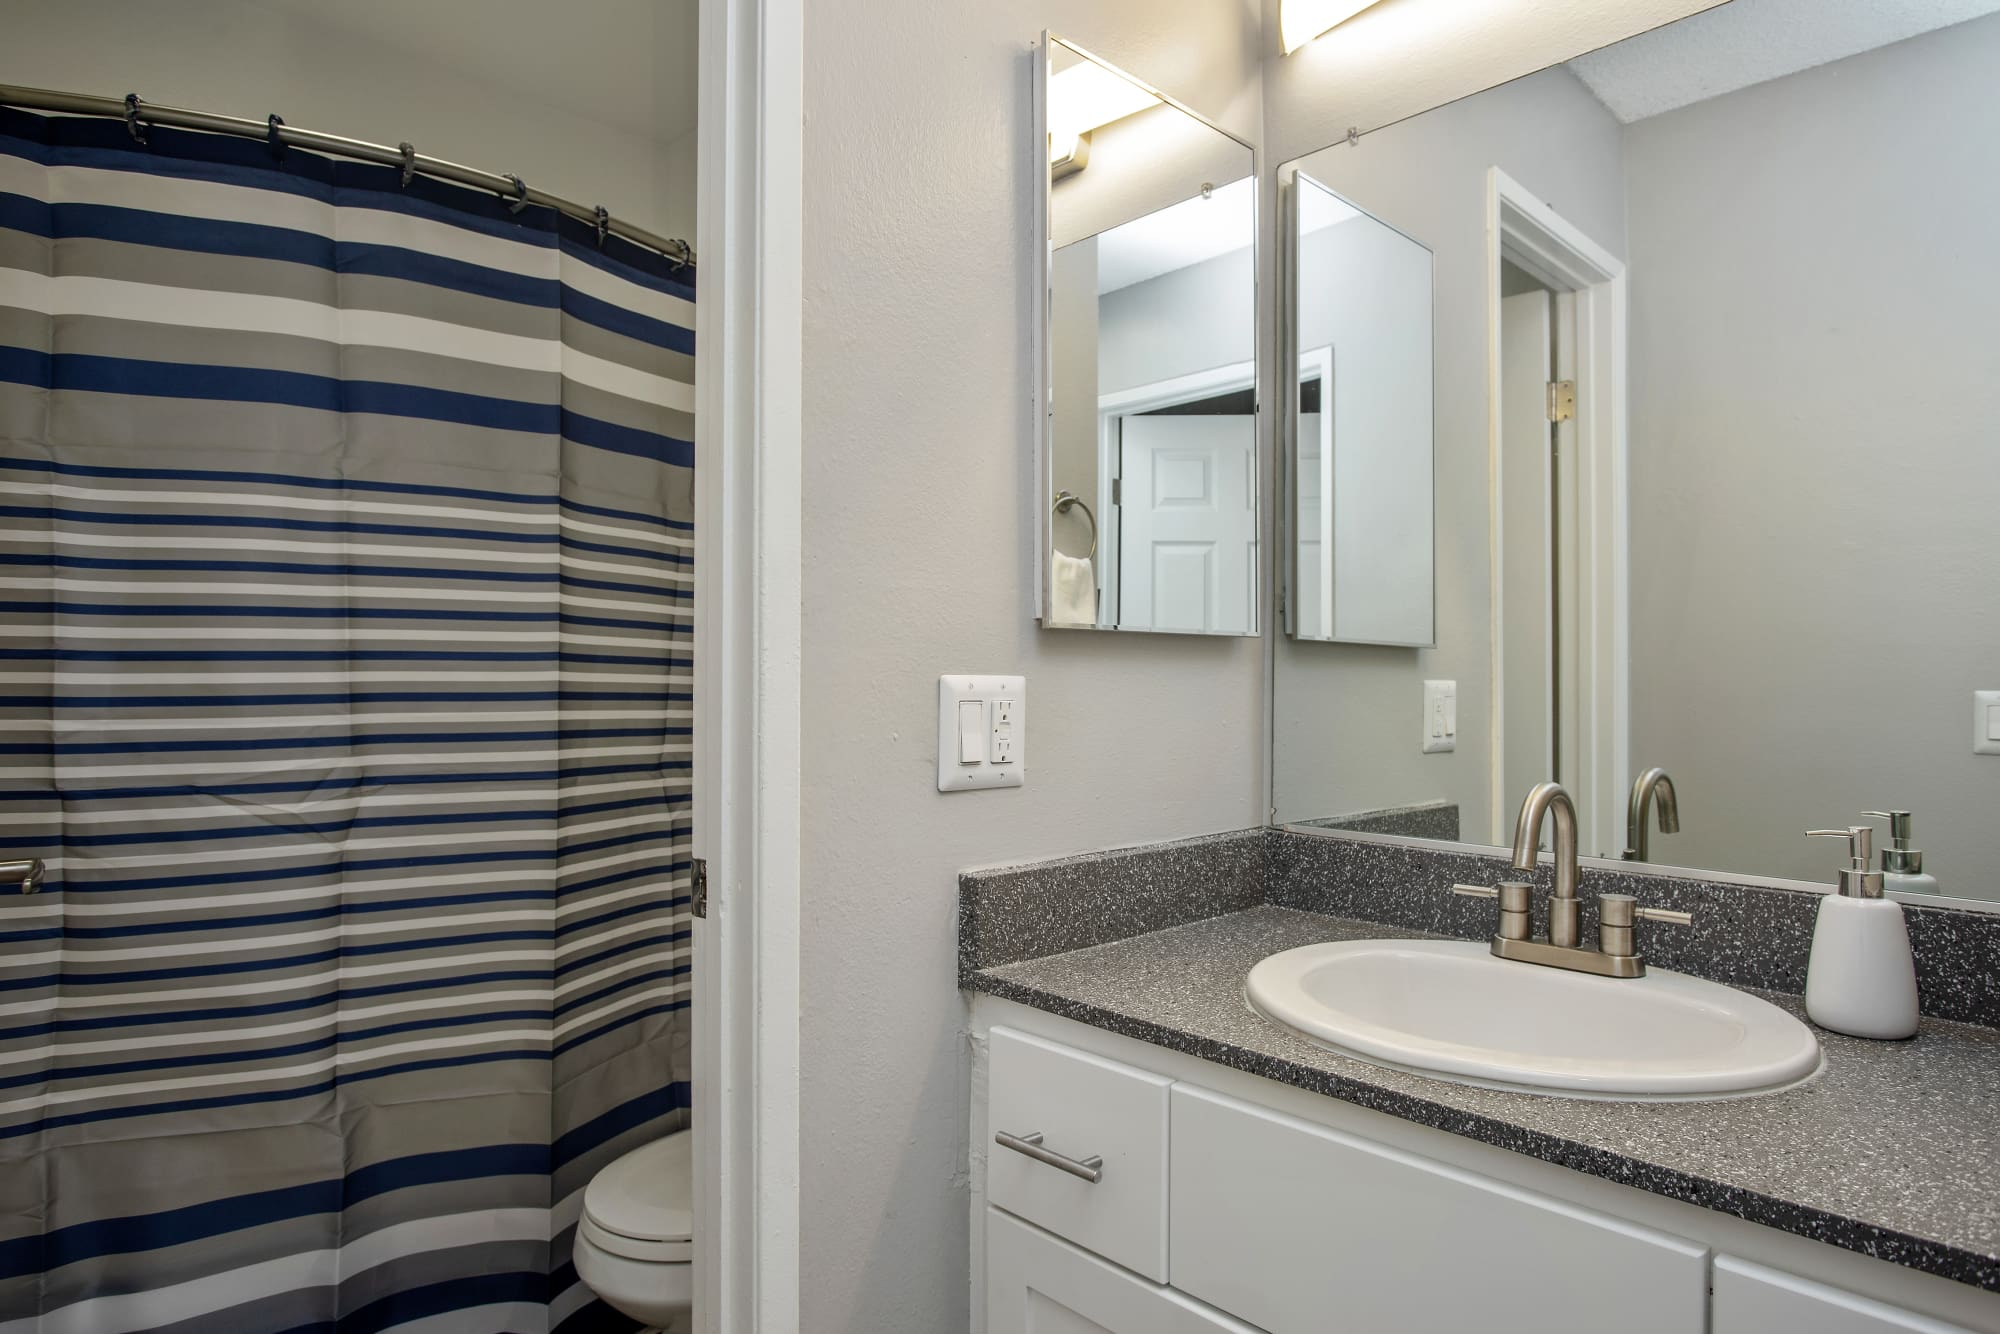 Bath Room at Shadow Ridge Apartments in Oceanside, CA